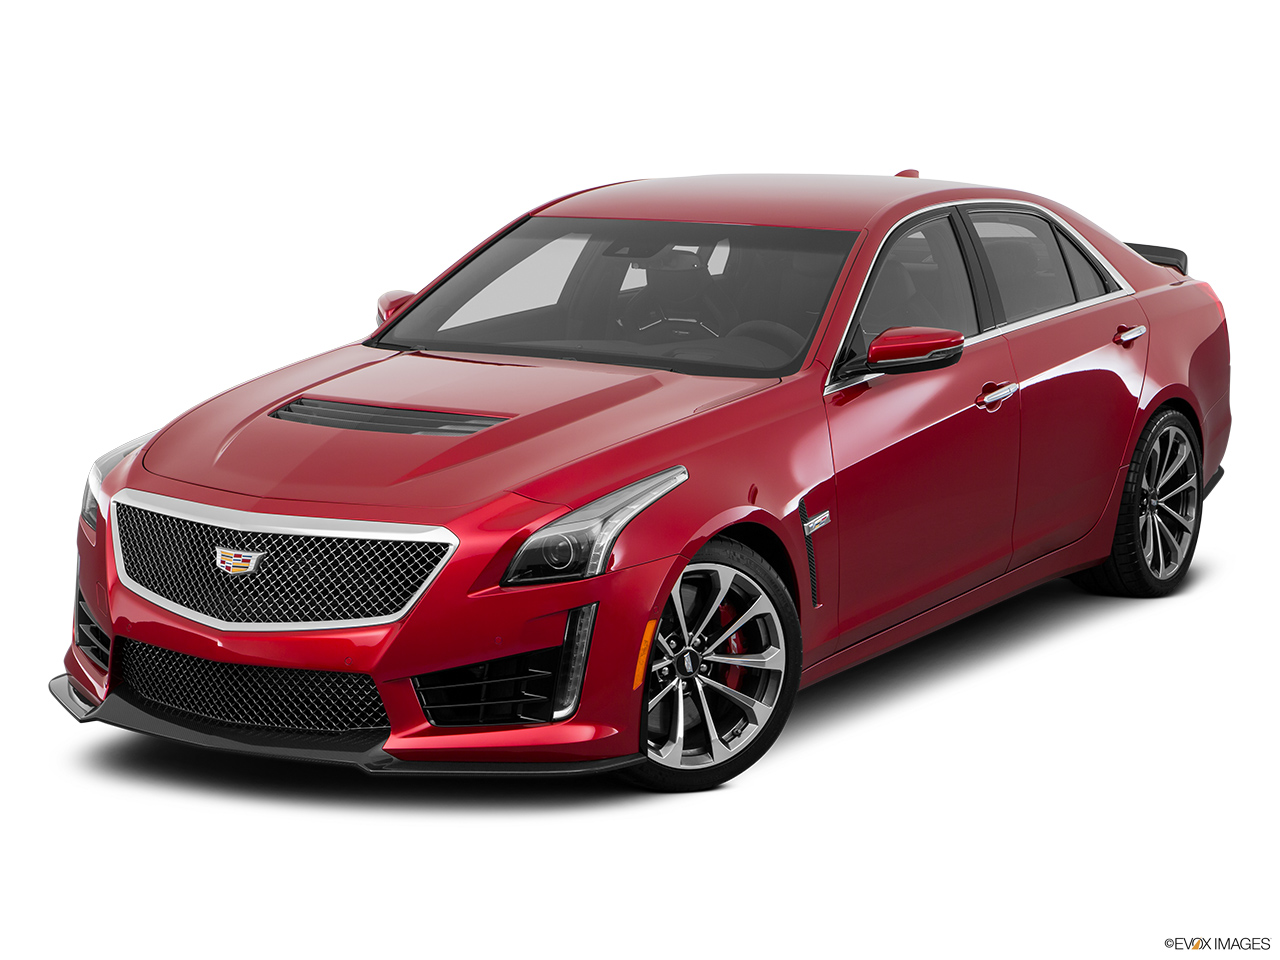 Cadillac Cts 2017 62l V In Saudi Arabia New Car Prices Specs White Cts6 Oman Front Angle View